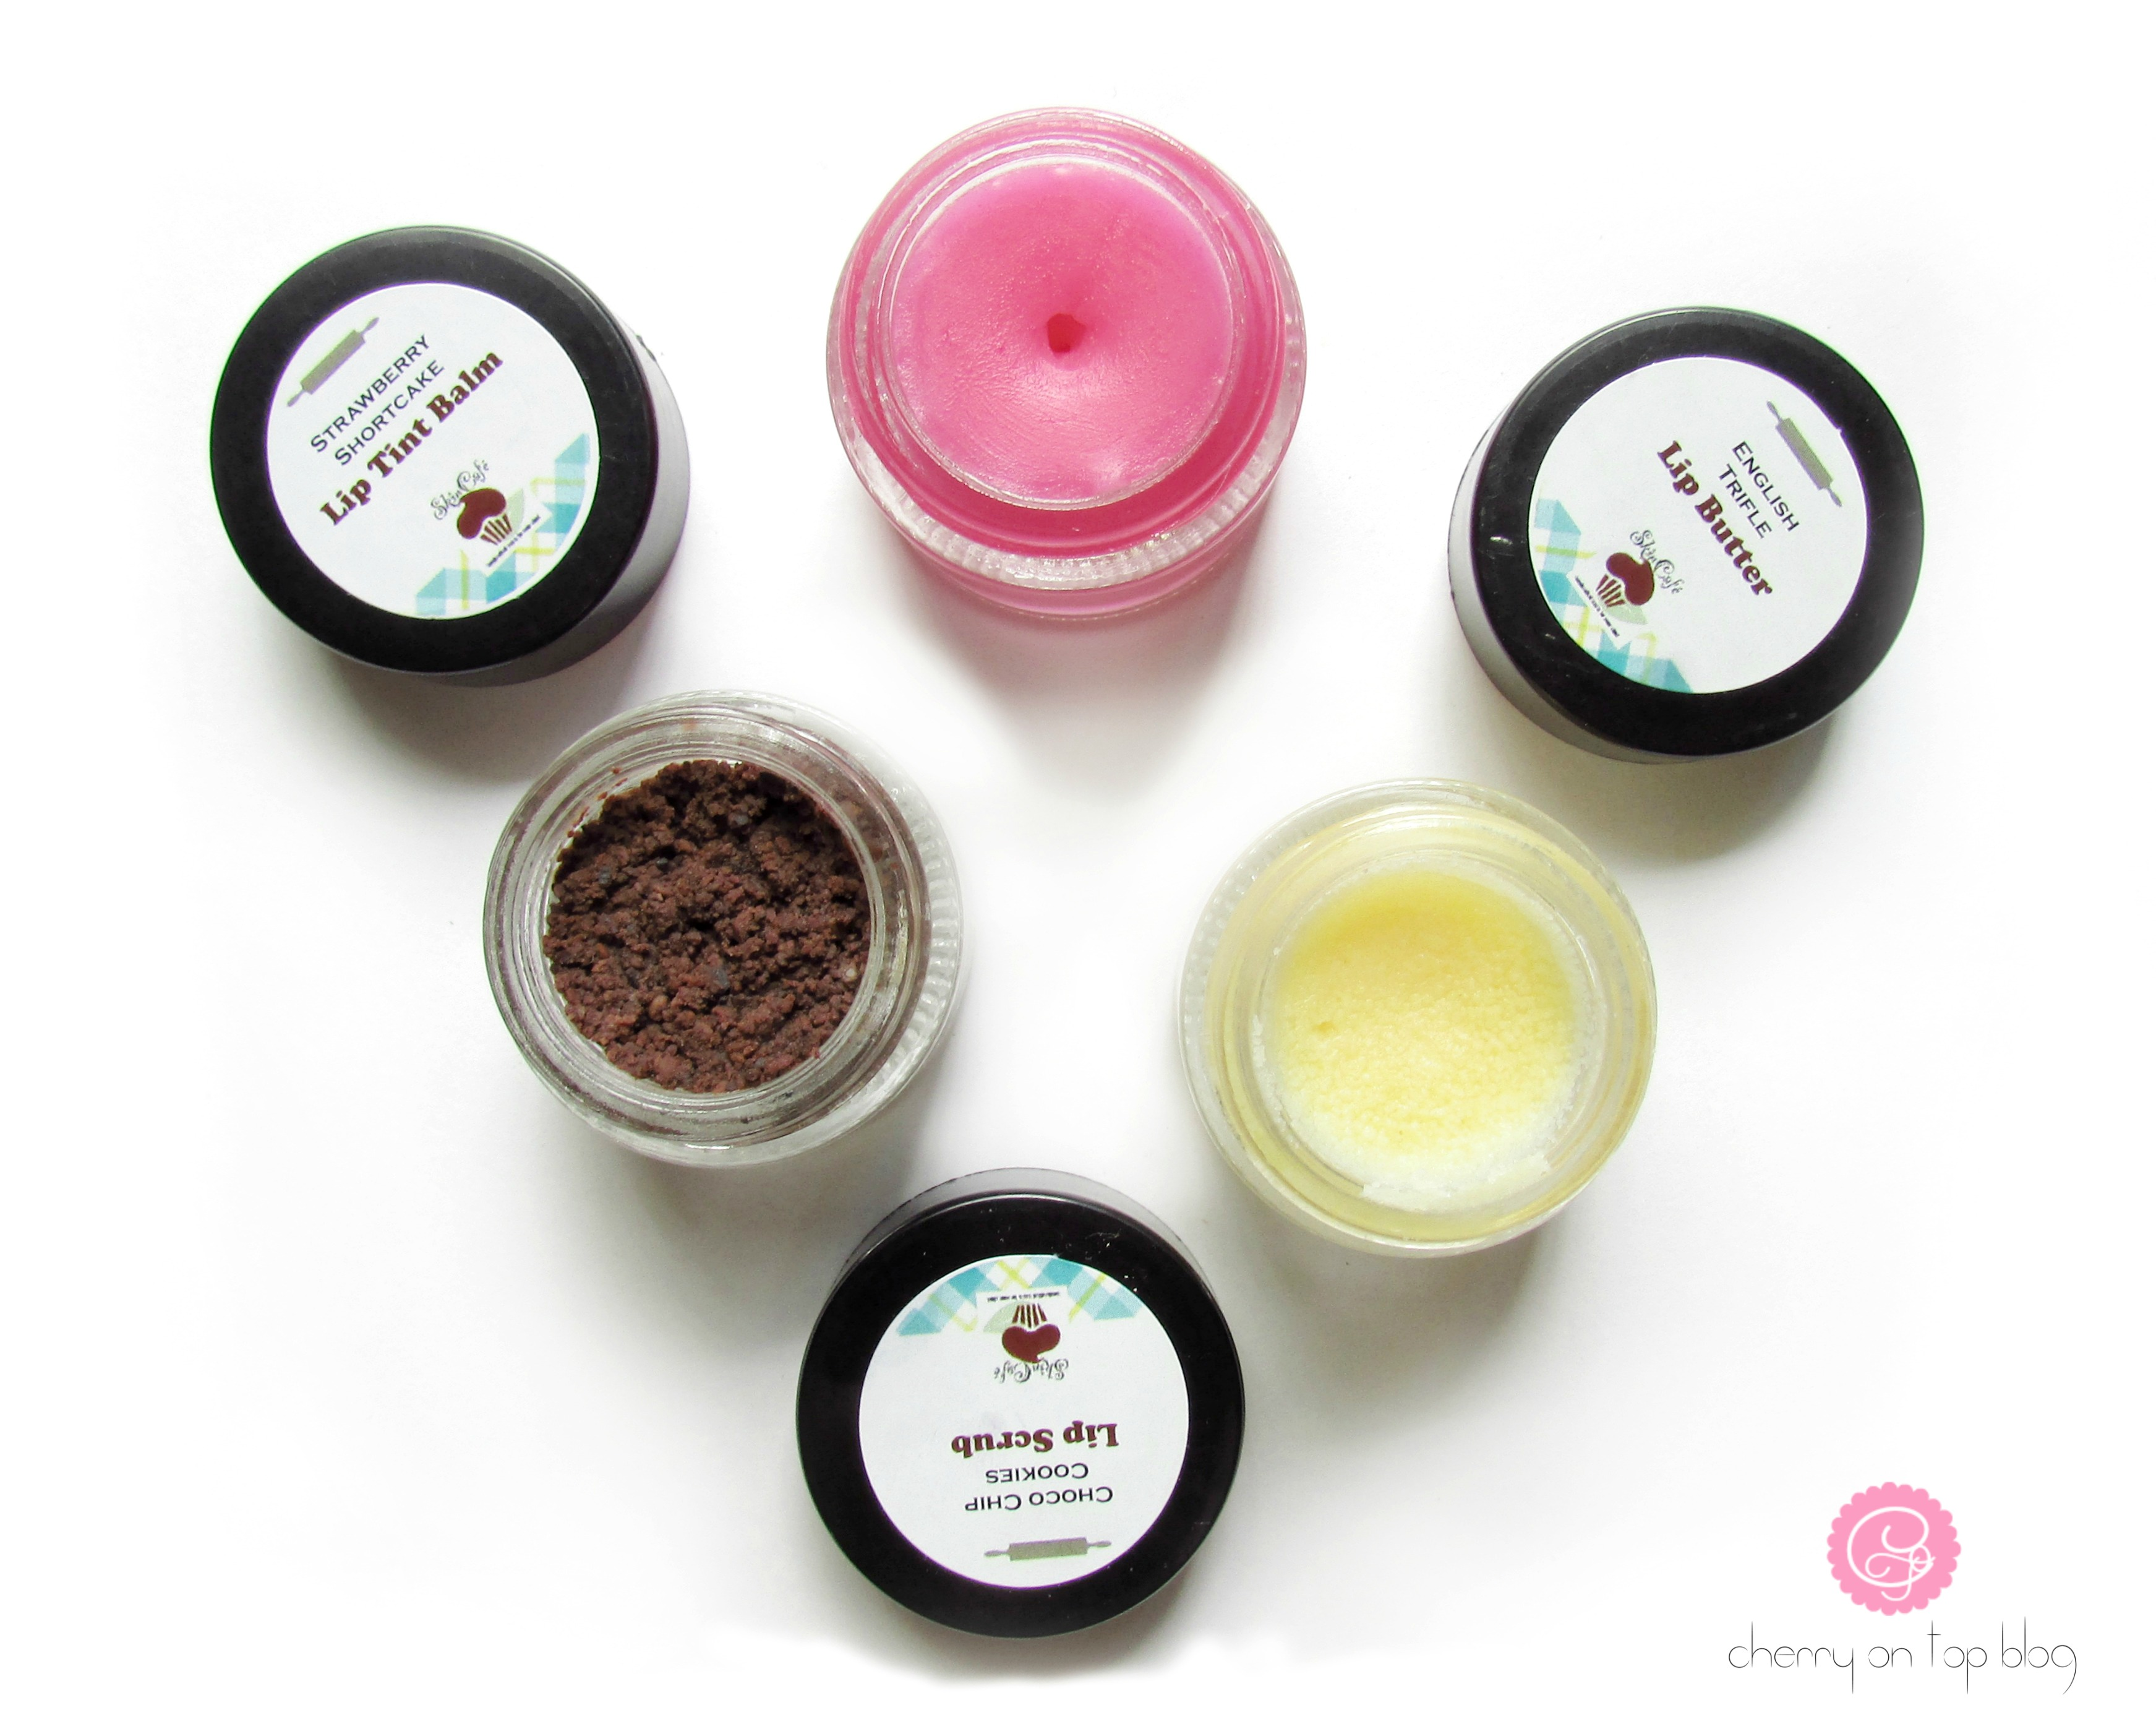 SkinCafe Lip Care Range- Scrub, Butter & Tinted Balm Review| cherryontopblog.com